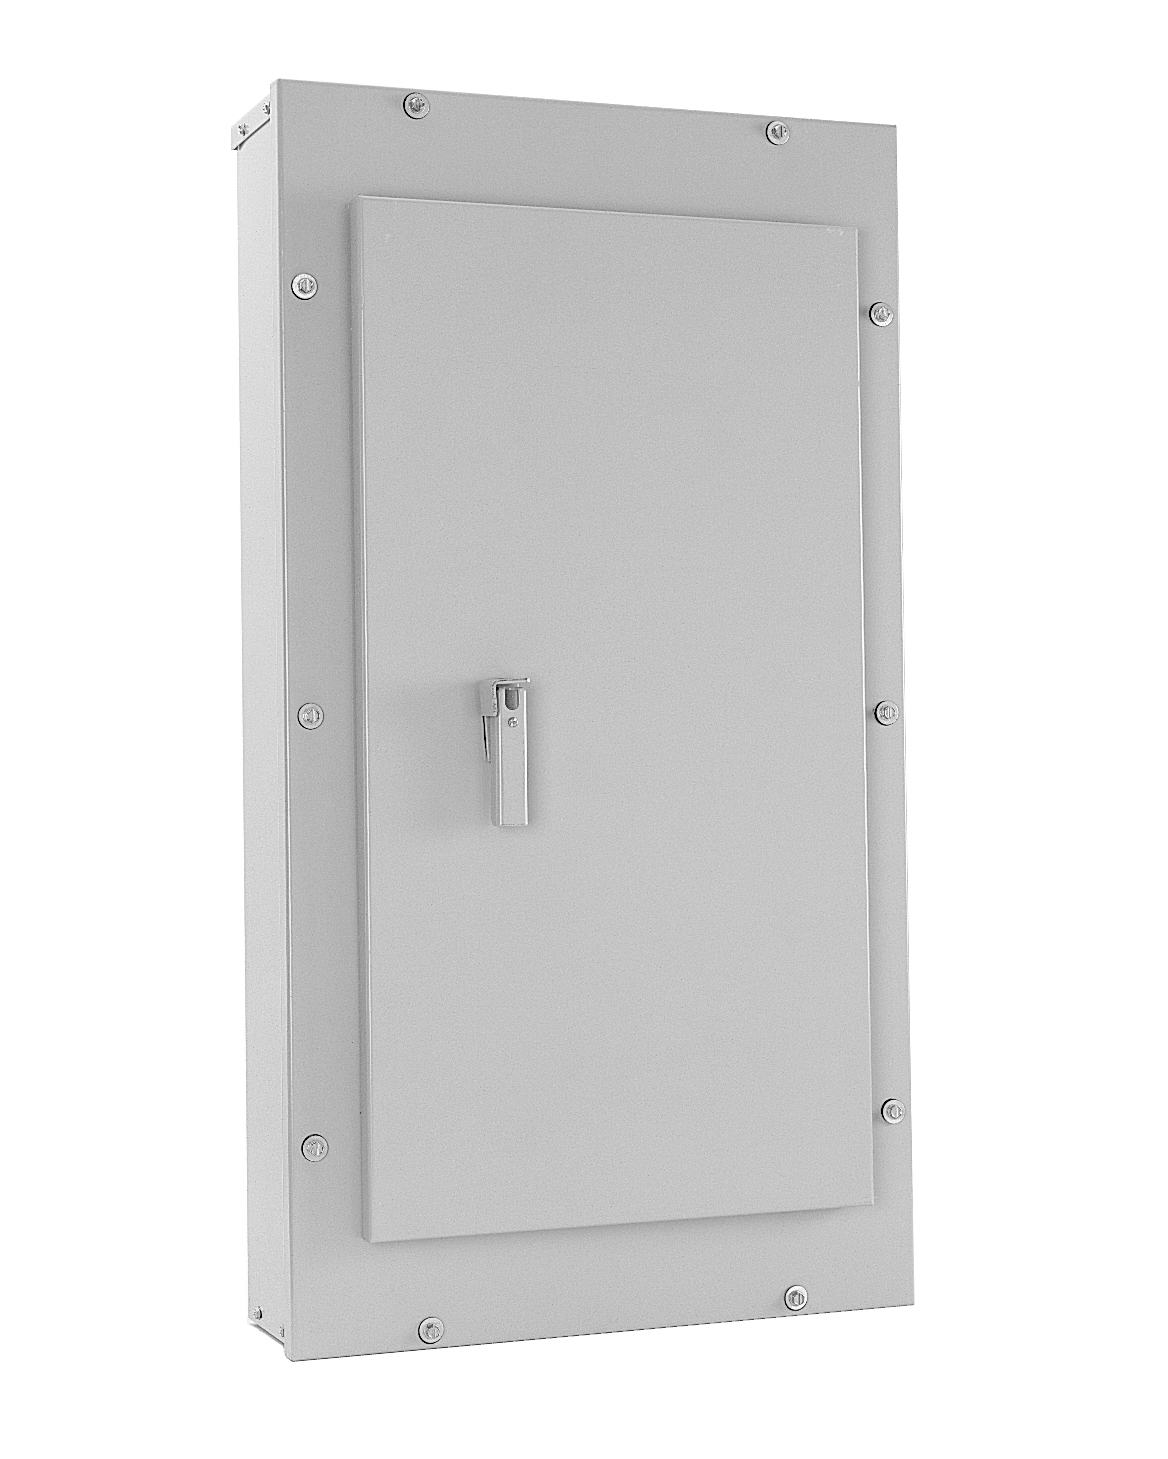 GE,AB763,General Electric AB763 Panel Board Box, Enclosure: NEMA 3R/12, Size: 76.500 IN Height X 20.000 IN Width X 5.810 IN Depth, Consist of: Blank Endwall